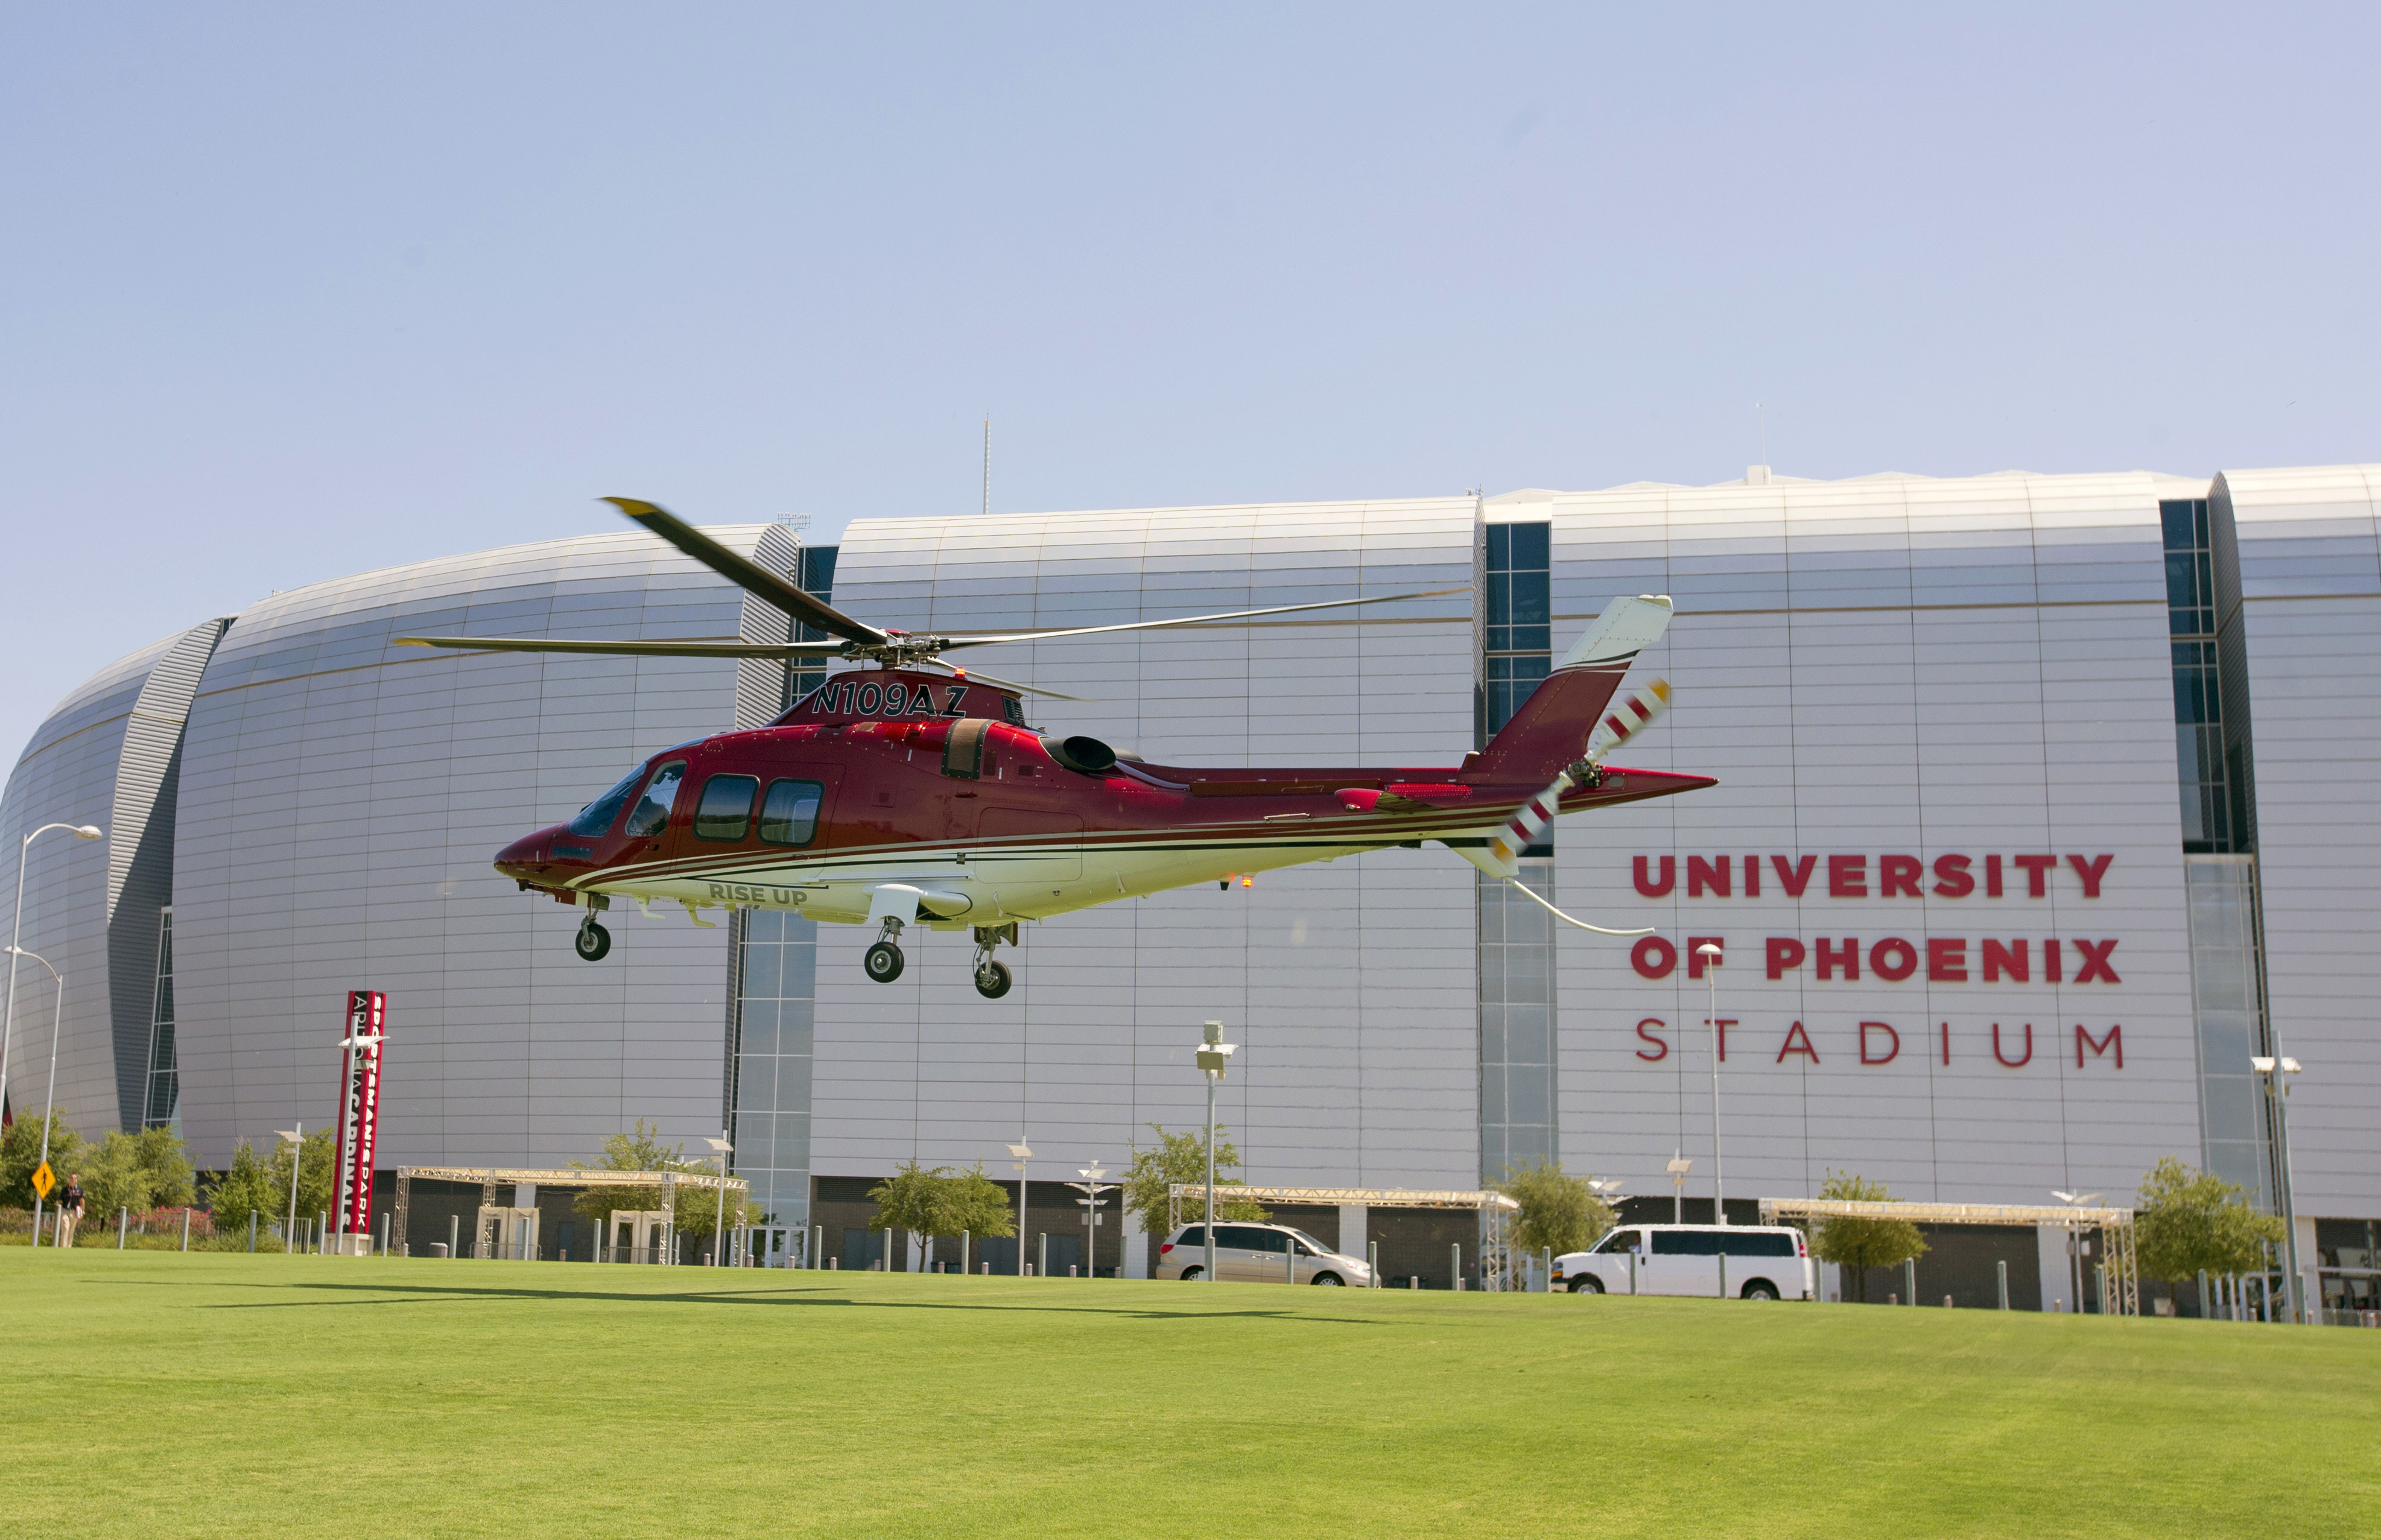 Arizona Cardinals' Patrick Peterson arrives by helicopter for first day of training camp at University of Phoenix Stadium in Glendale, Ariz., Thursday, July 28, 2016. (Cheryl Evans/The Arizona Republic via AP)